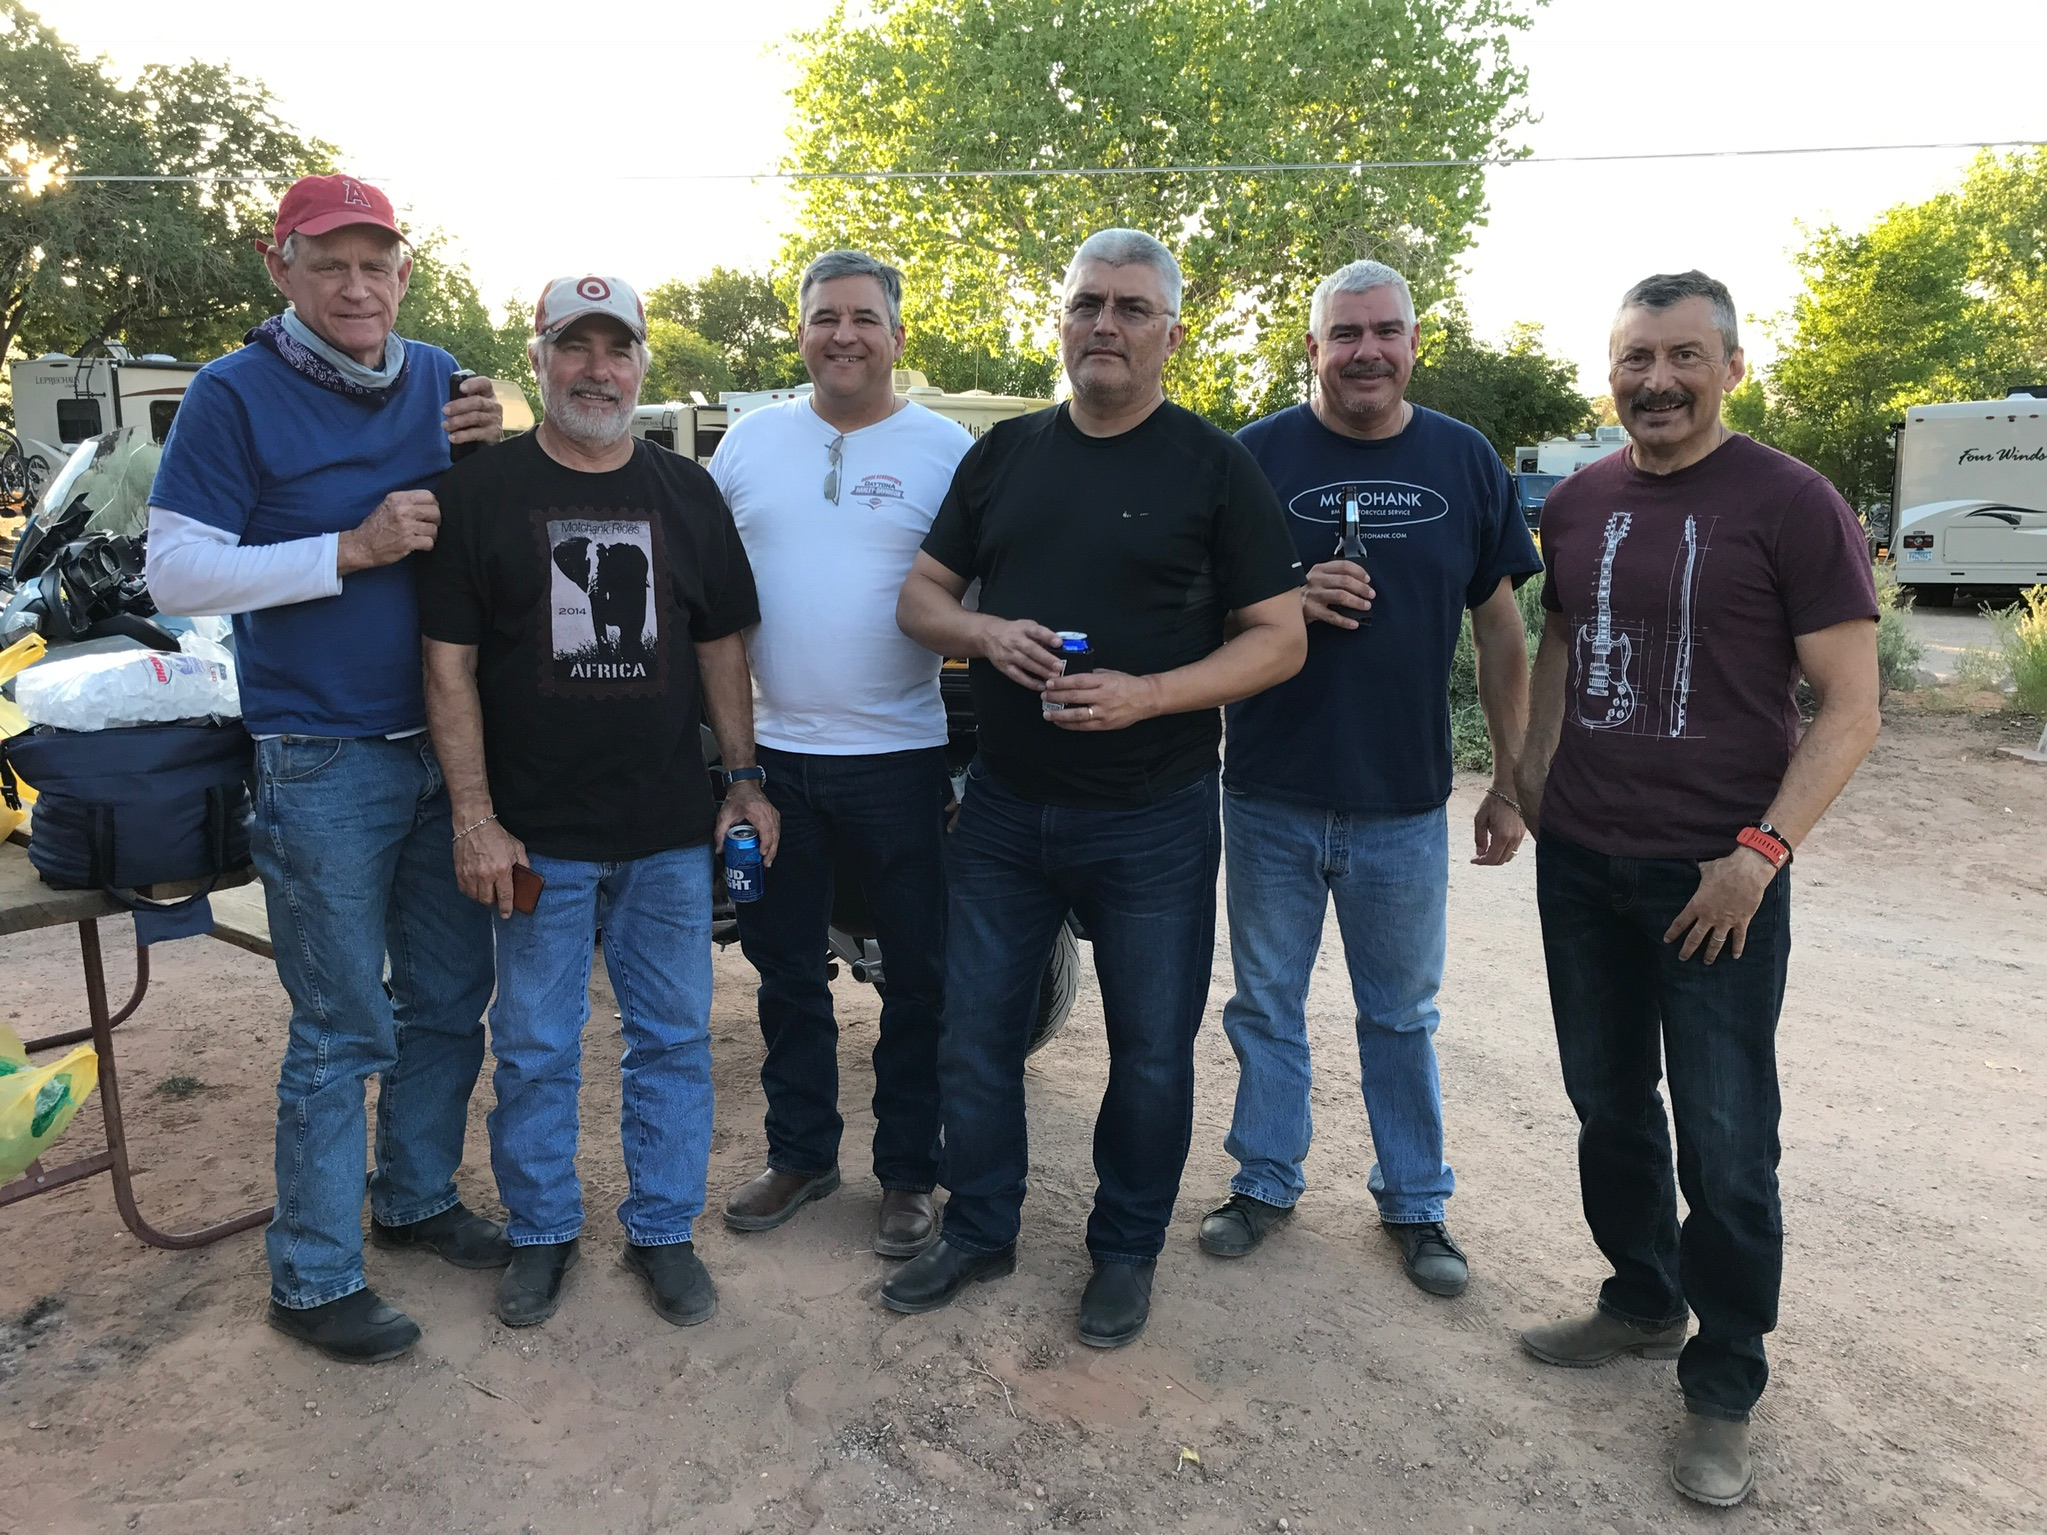 At the KOA Camp Grounds in Moab, Ut. L-R: Rob, Ricardo, Ed, Hiram, Albert, Marco. Not pictured are Tomas and David.